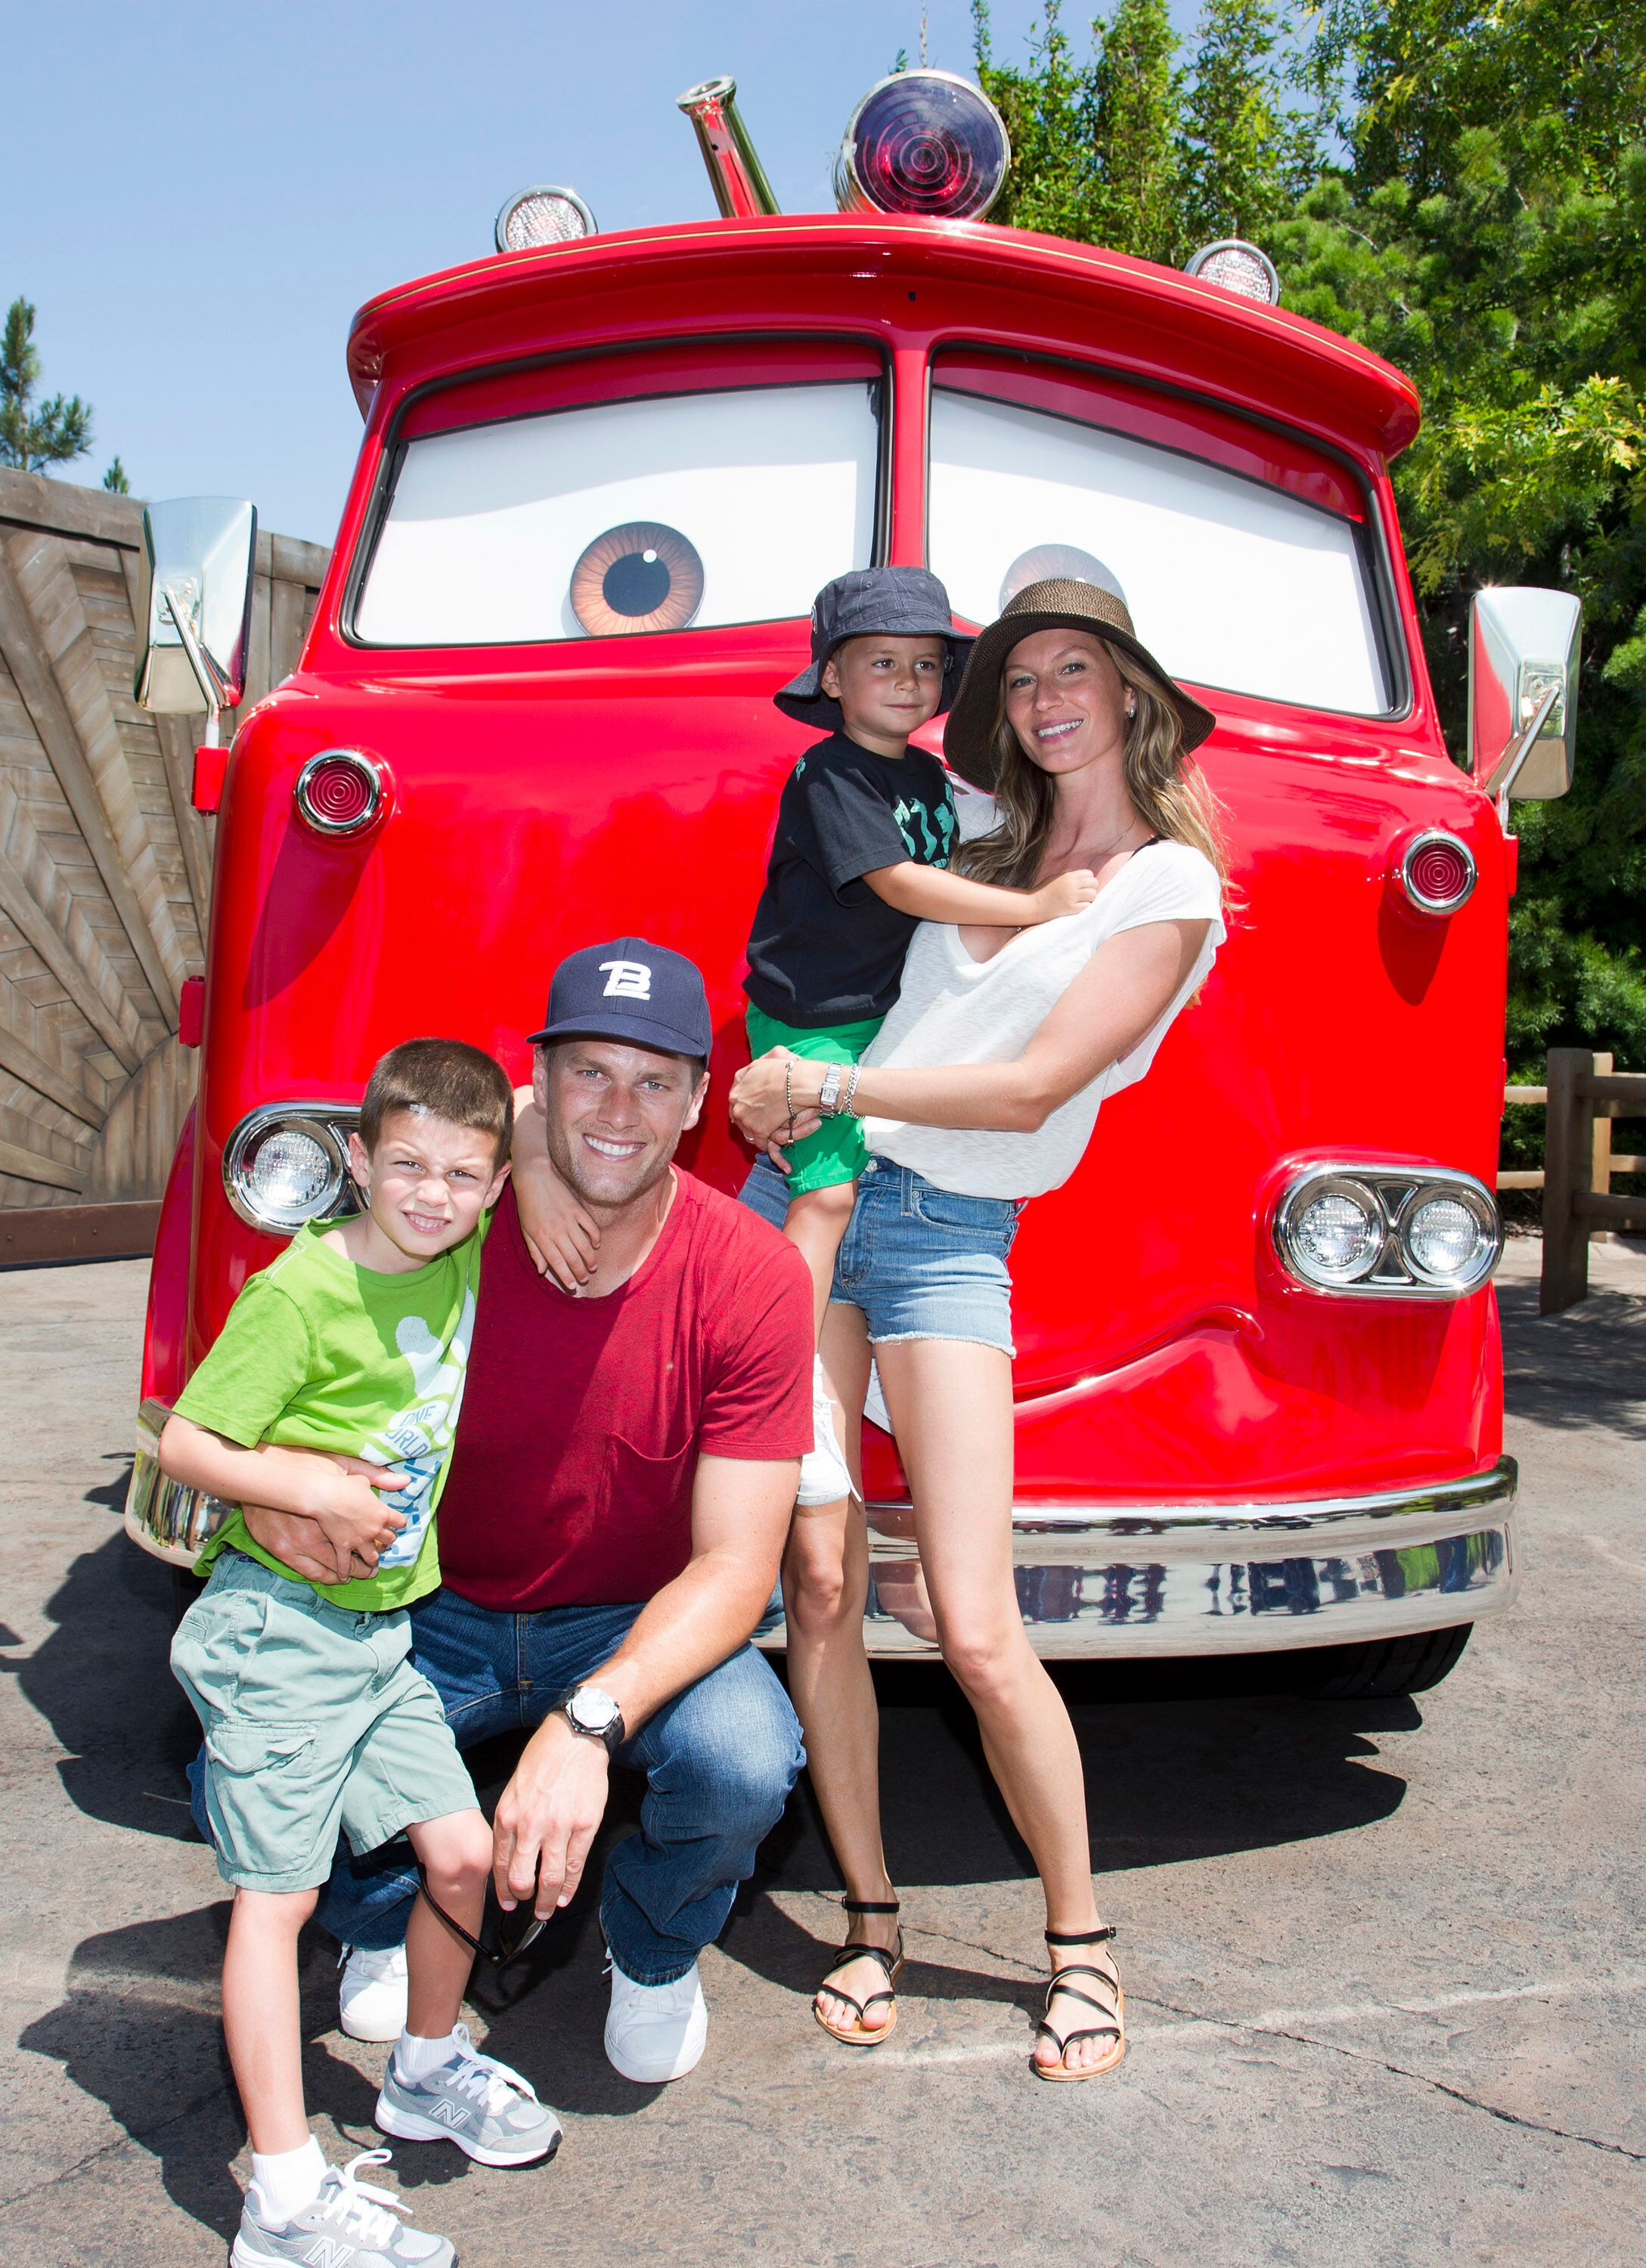 Tom Brady, his son Jack, 5, Gisele Bundchen, and their son Benjamin, 3, pose with Red the Fire Truck at Cars Land at Disney California Adventure park  | Getty Images